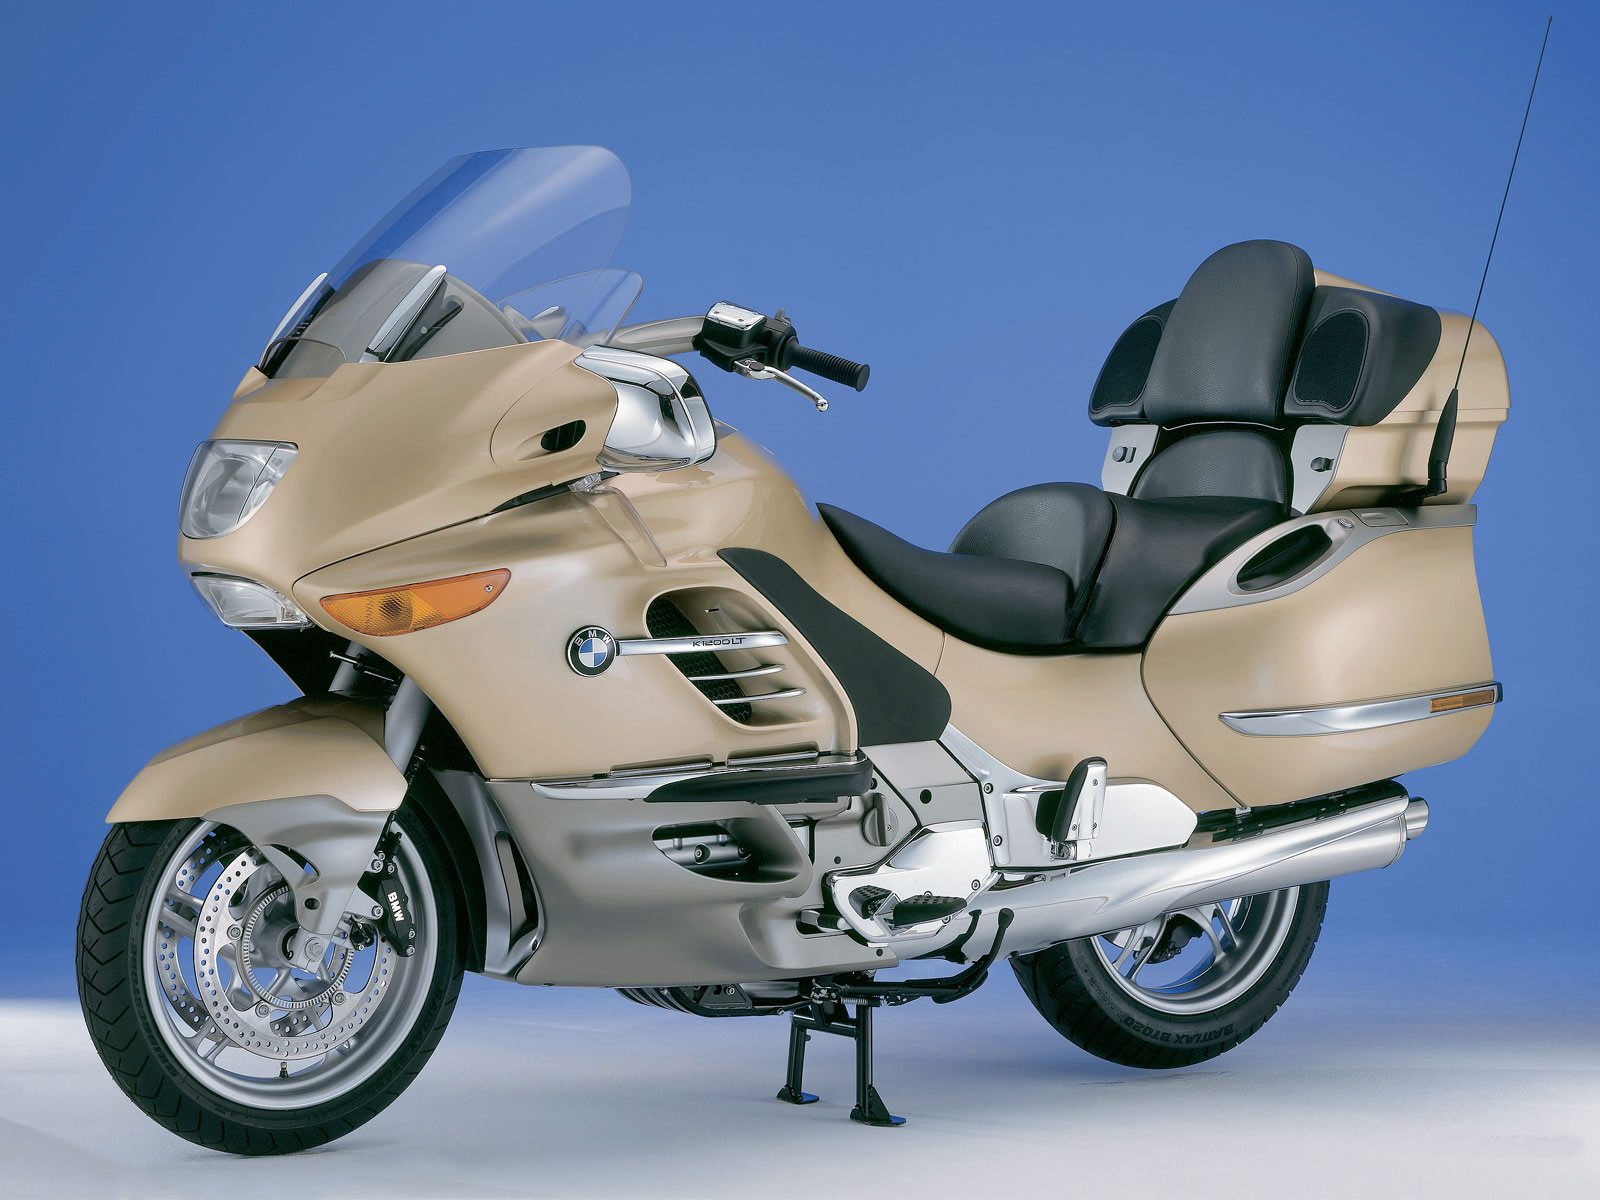 2004 BMW K1200LT motorcycle wallpaper   accident lawyers info